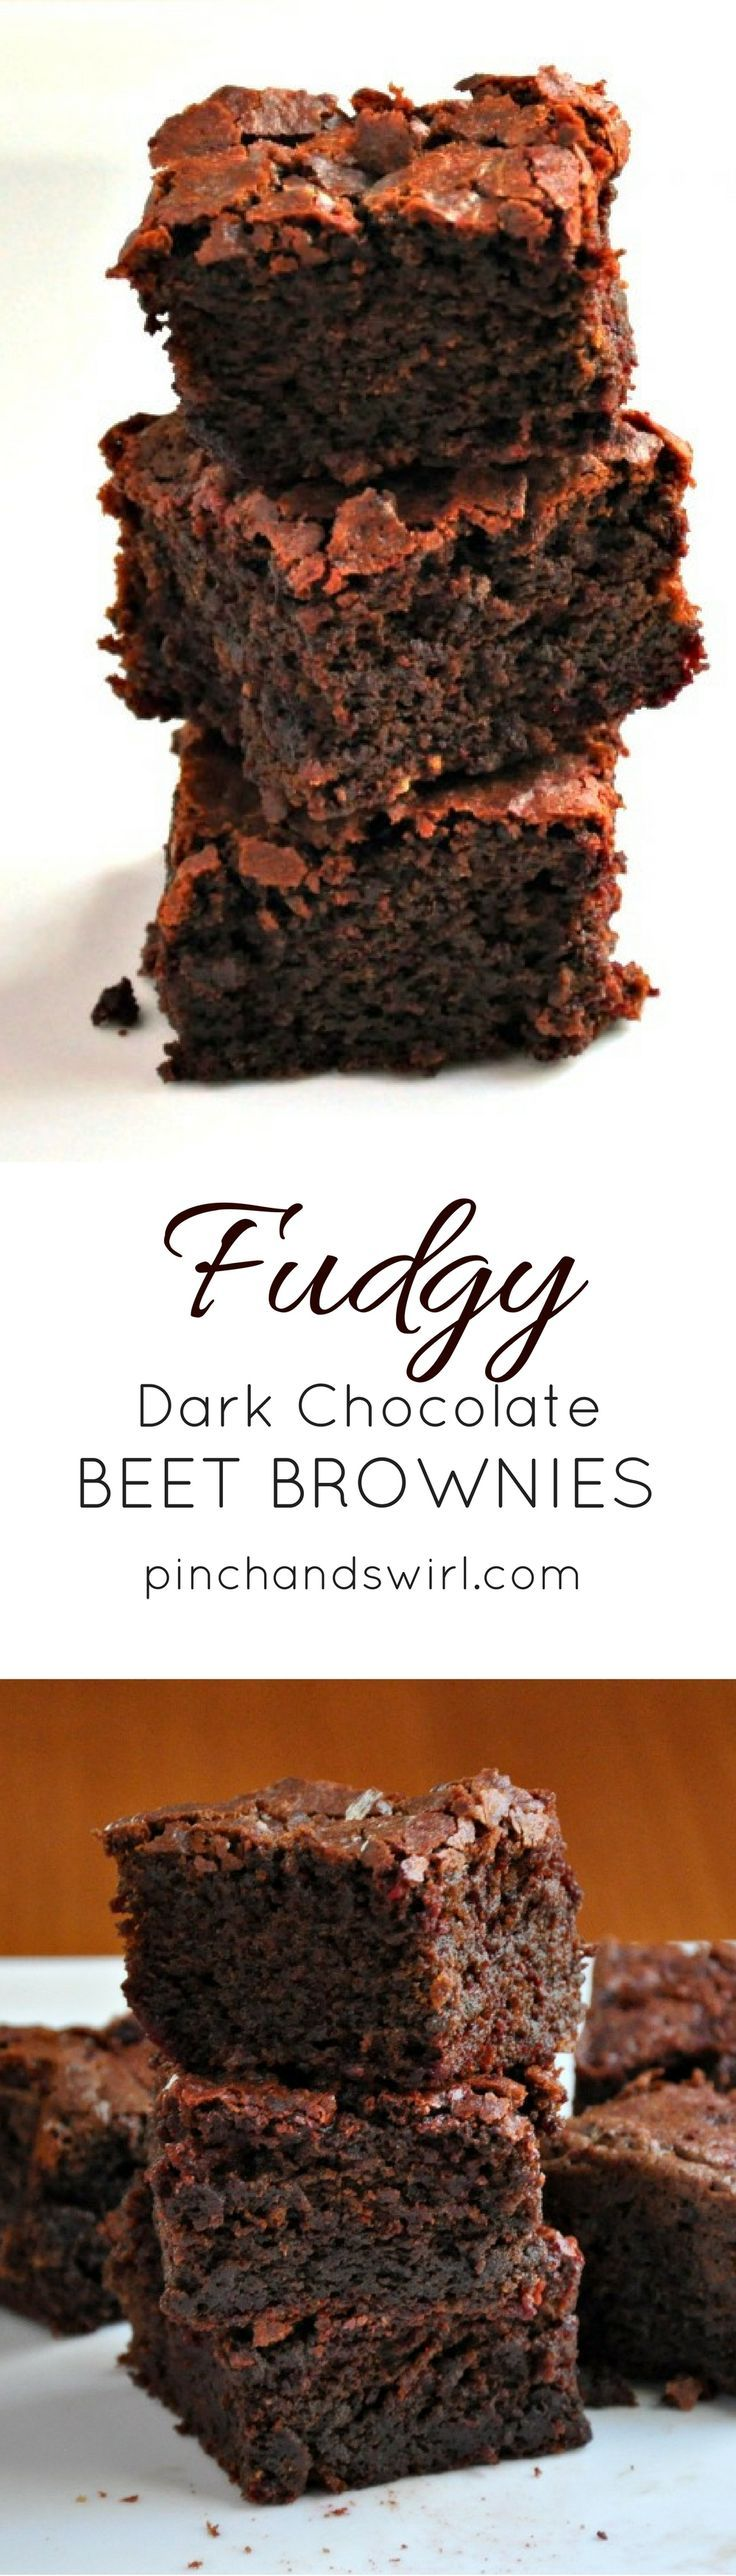 Fudgy Dark Chocolate Beet Brownies - you won't taste the beets, but they'll make the texture of your brownies heavenly! #chocolate #brownies #healthydesserts